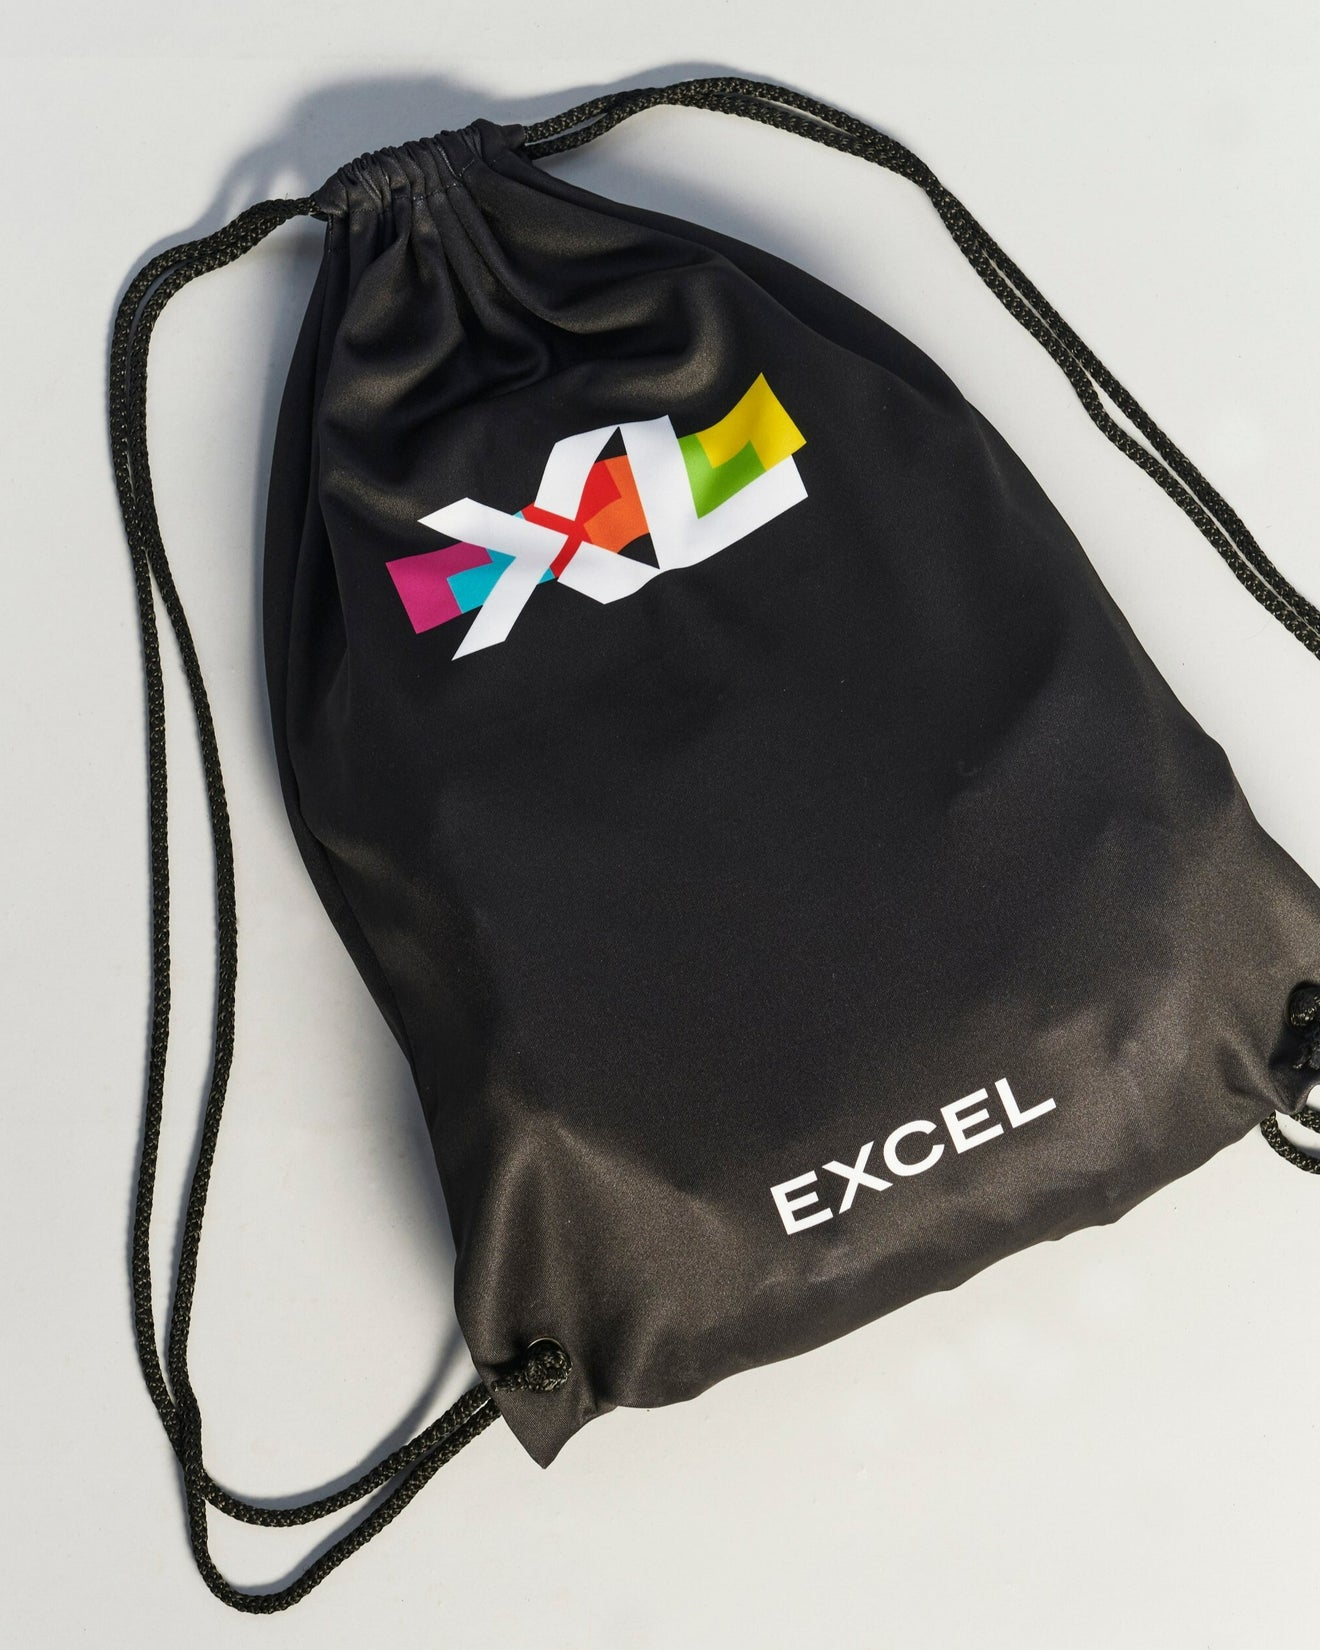 XL.2020 FREE Drawstring Bag